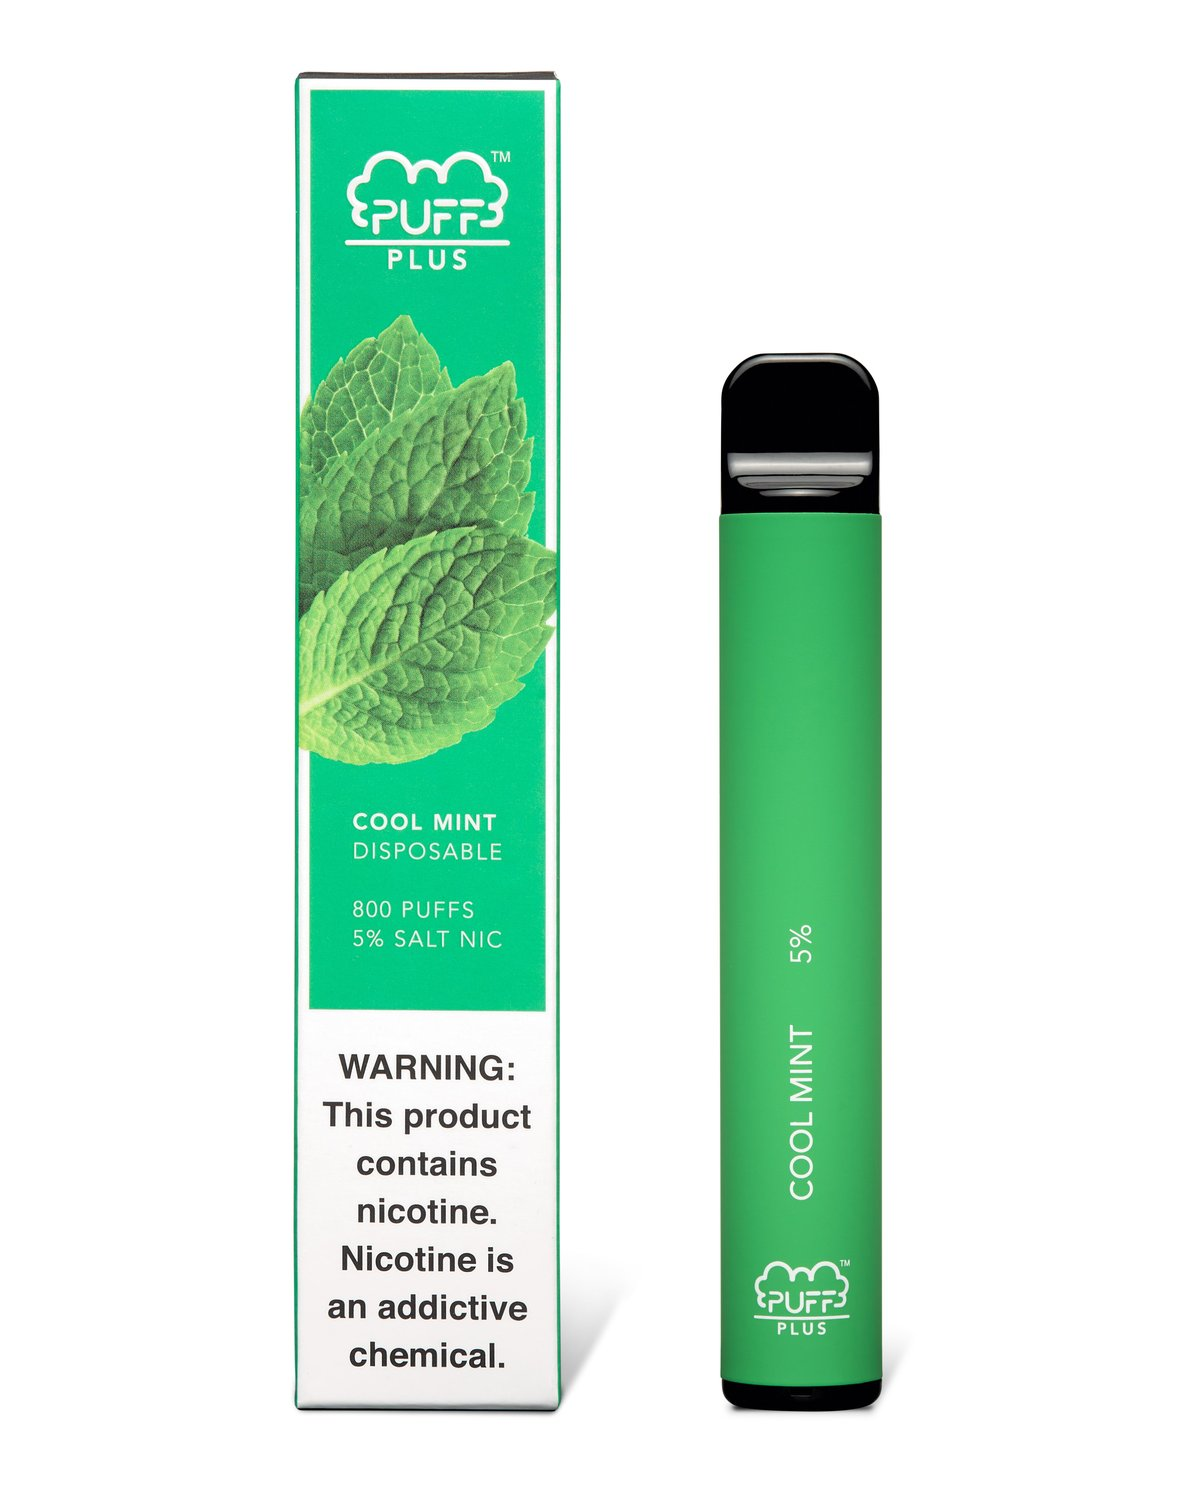 Cool Mint Puff Bar Plus - for a refreshing cool sesation for all the Mint lovers, mixed with menthol to add sweetness that is both refreshing and smooth. Now in Puff Bar Plus form you can get more than double the puffs for even more value.